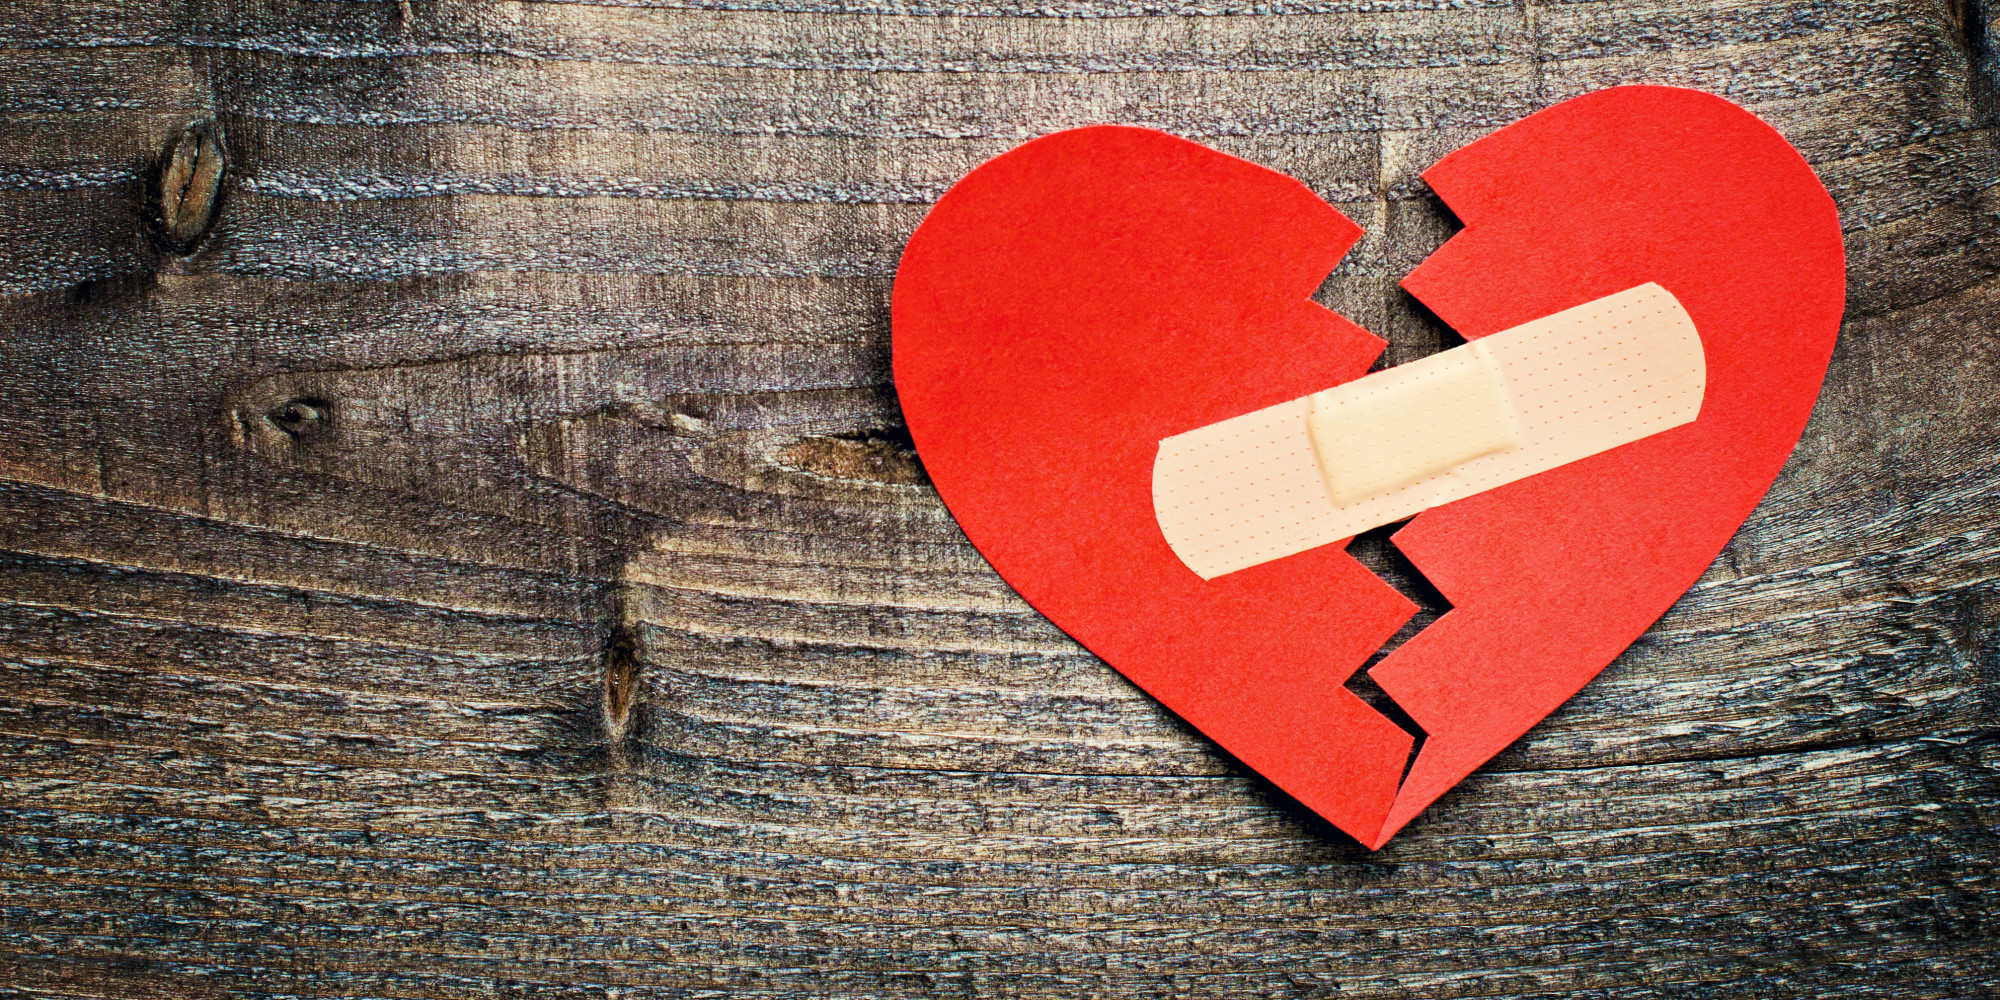 3 steps to free your heart after parting